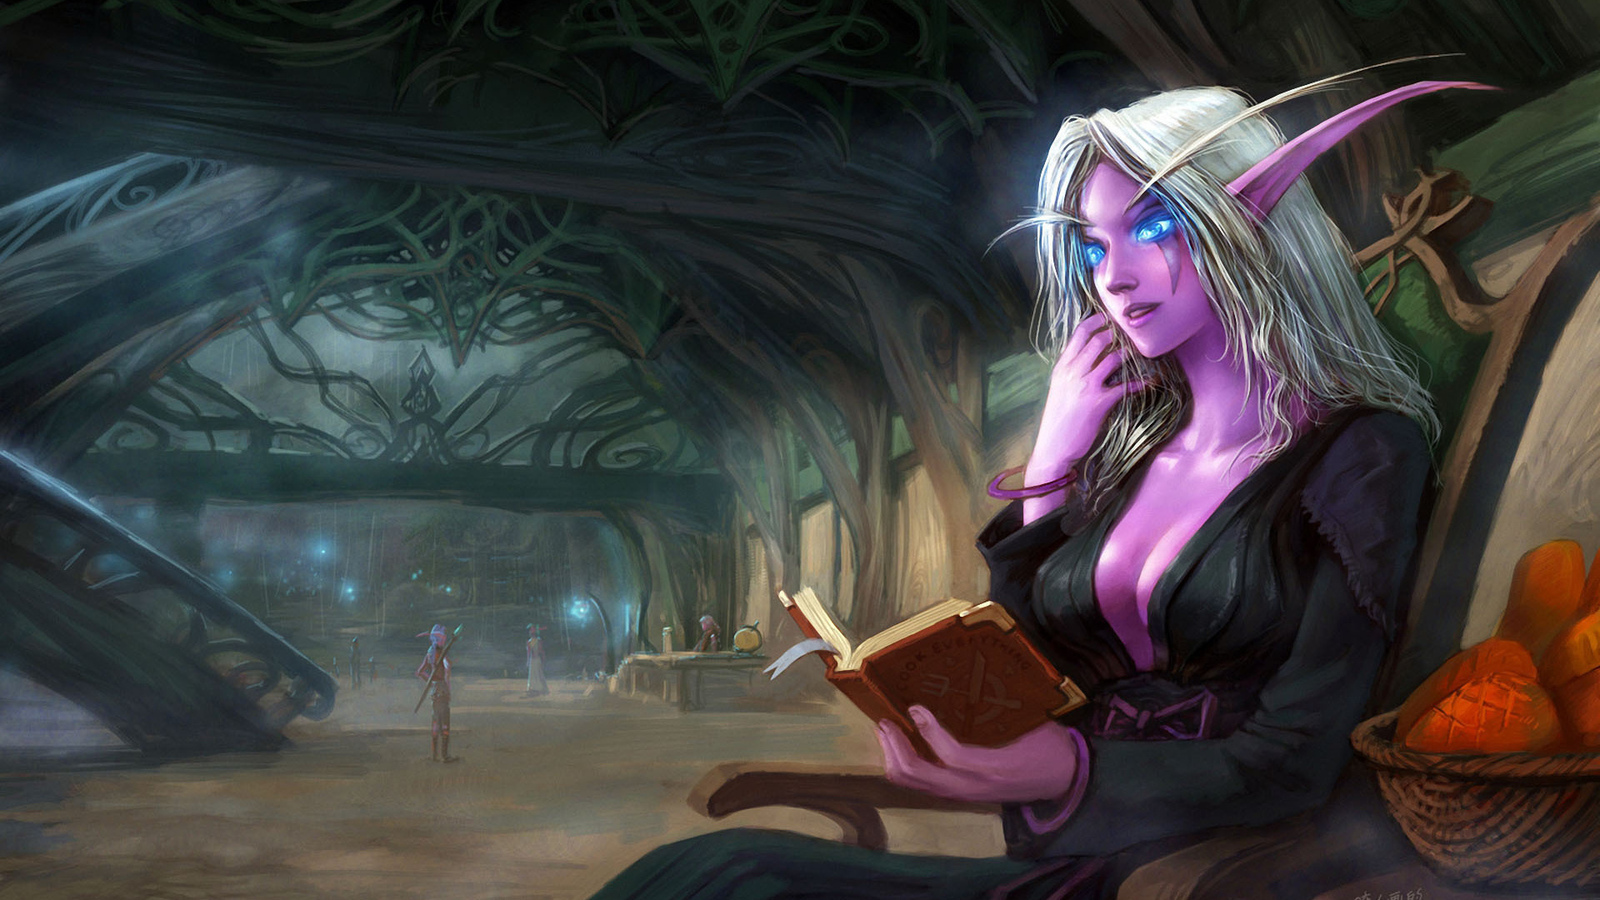 World of warcraft elf art hentia videos